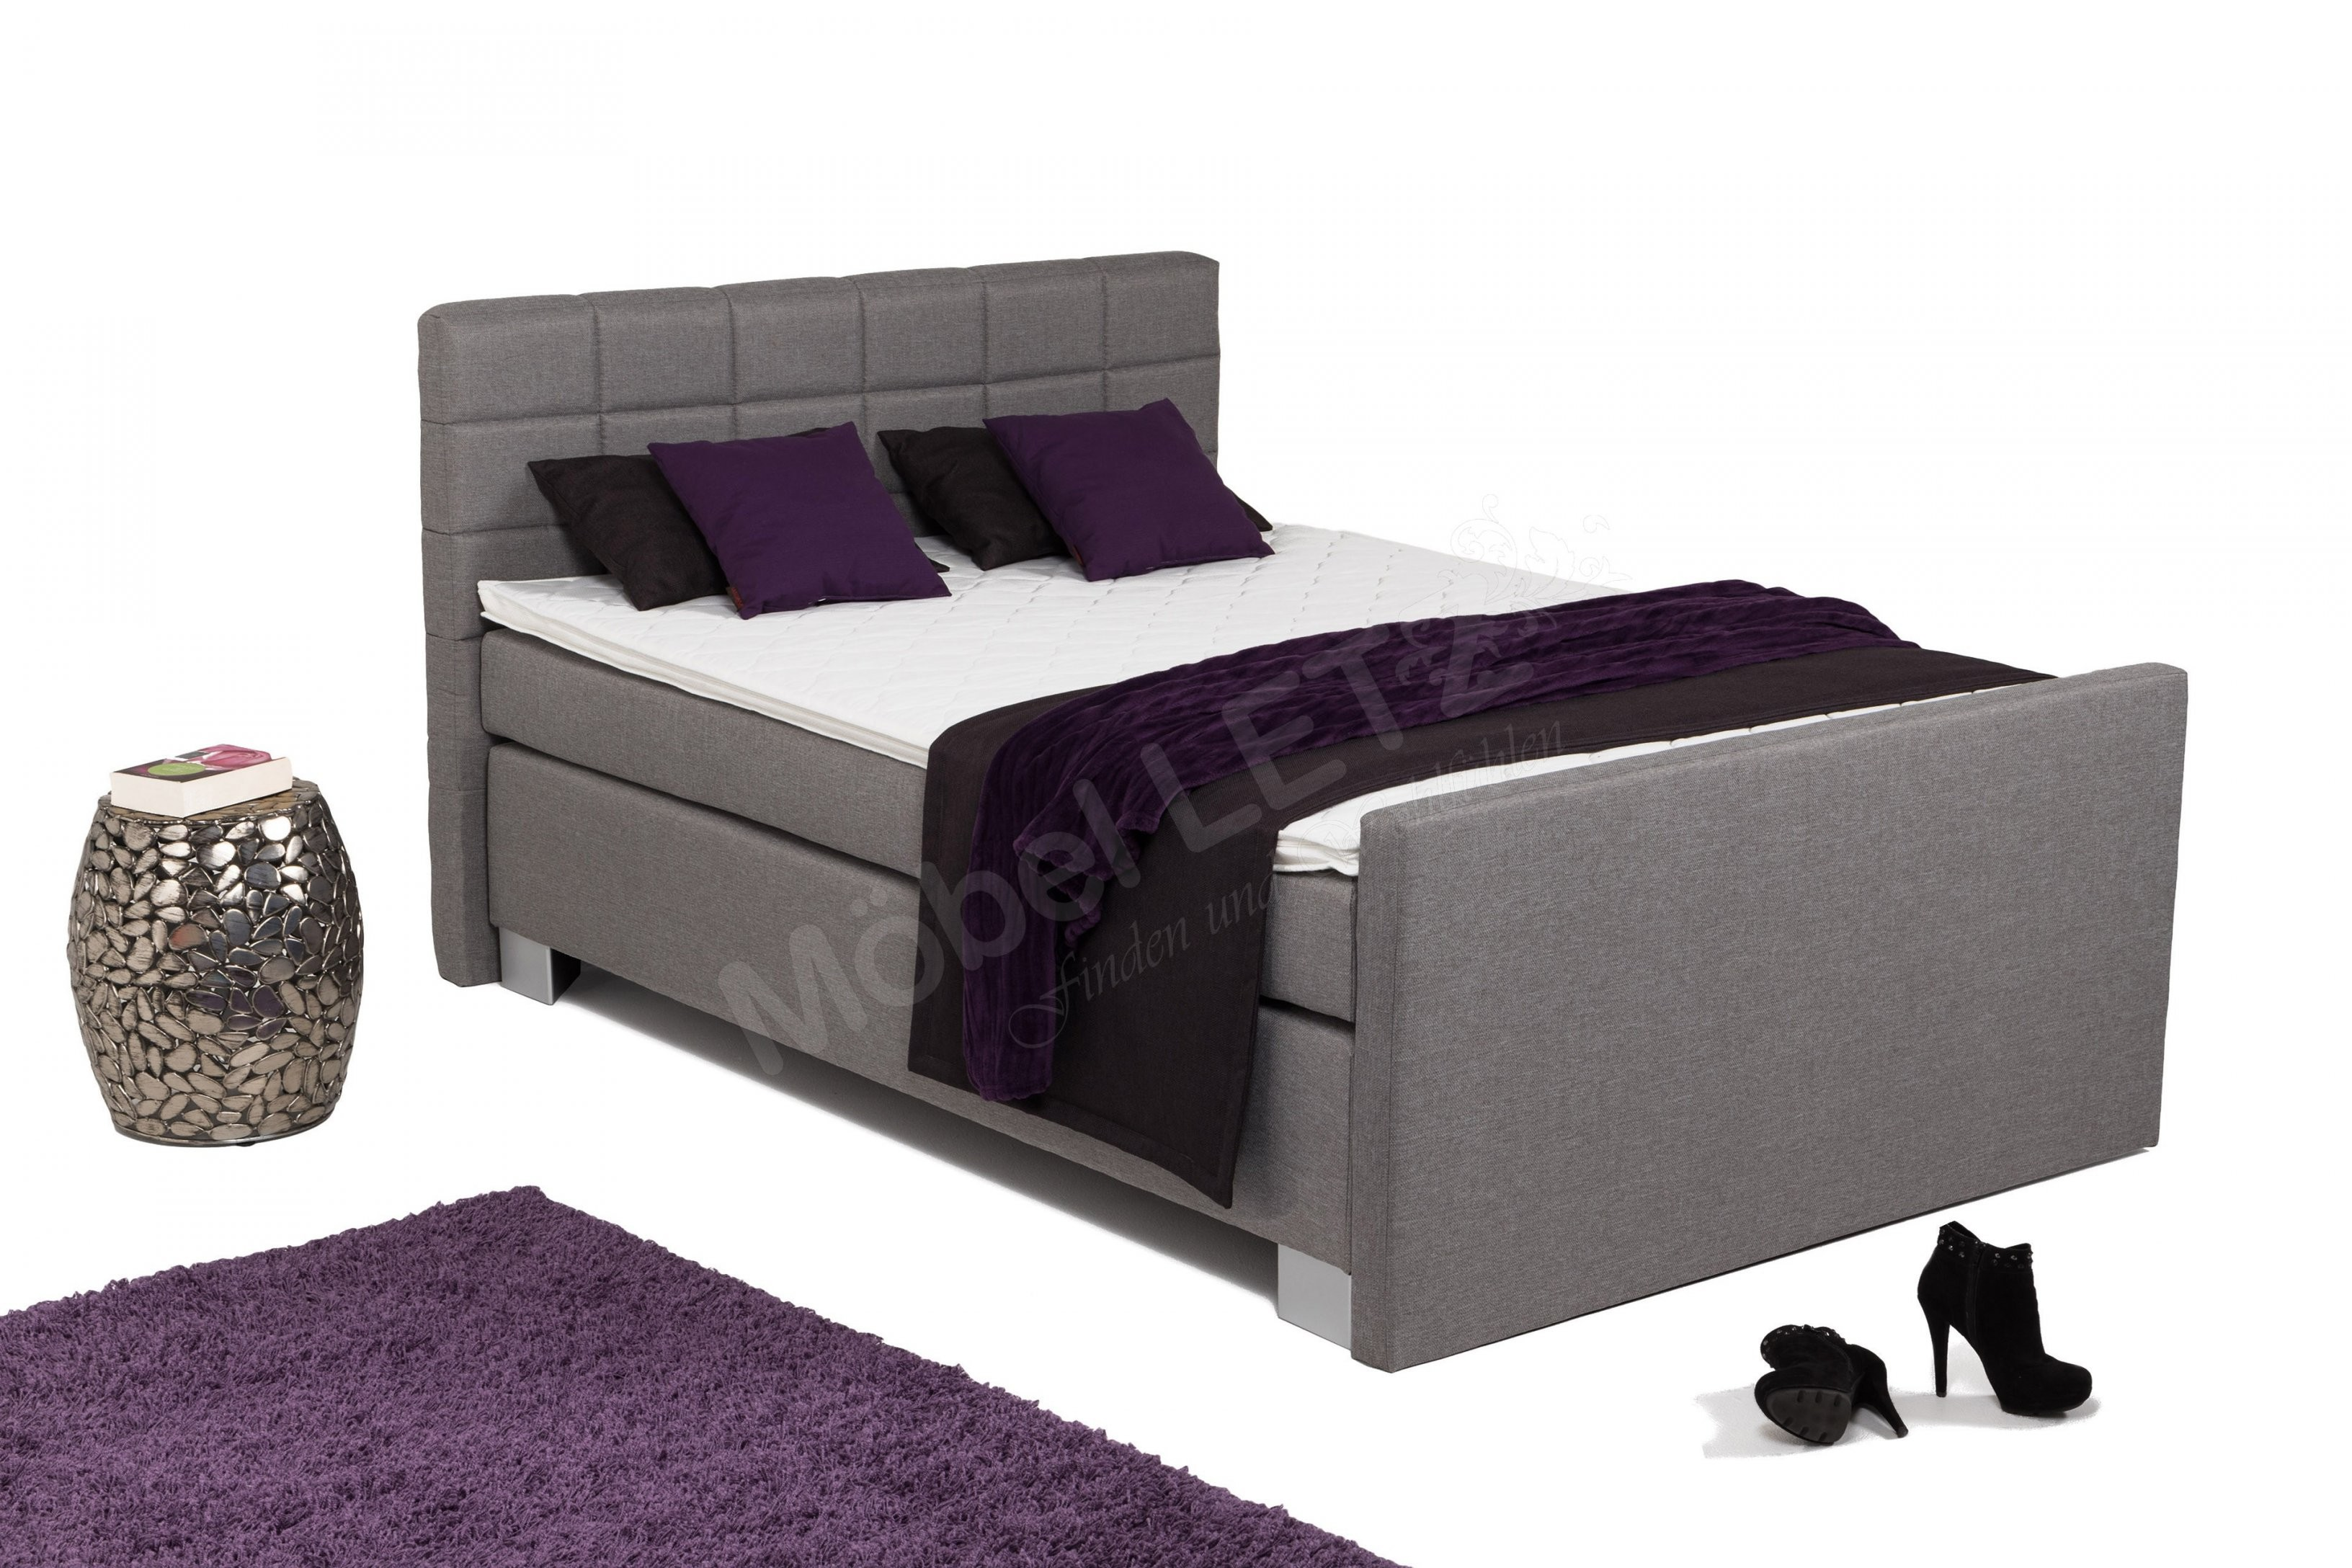 Hapo Boxspringbett Boston In Grau Ca 140 X 200 Cm  Möbel Letz von Boxspringbett Boston 140X200 Photo